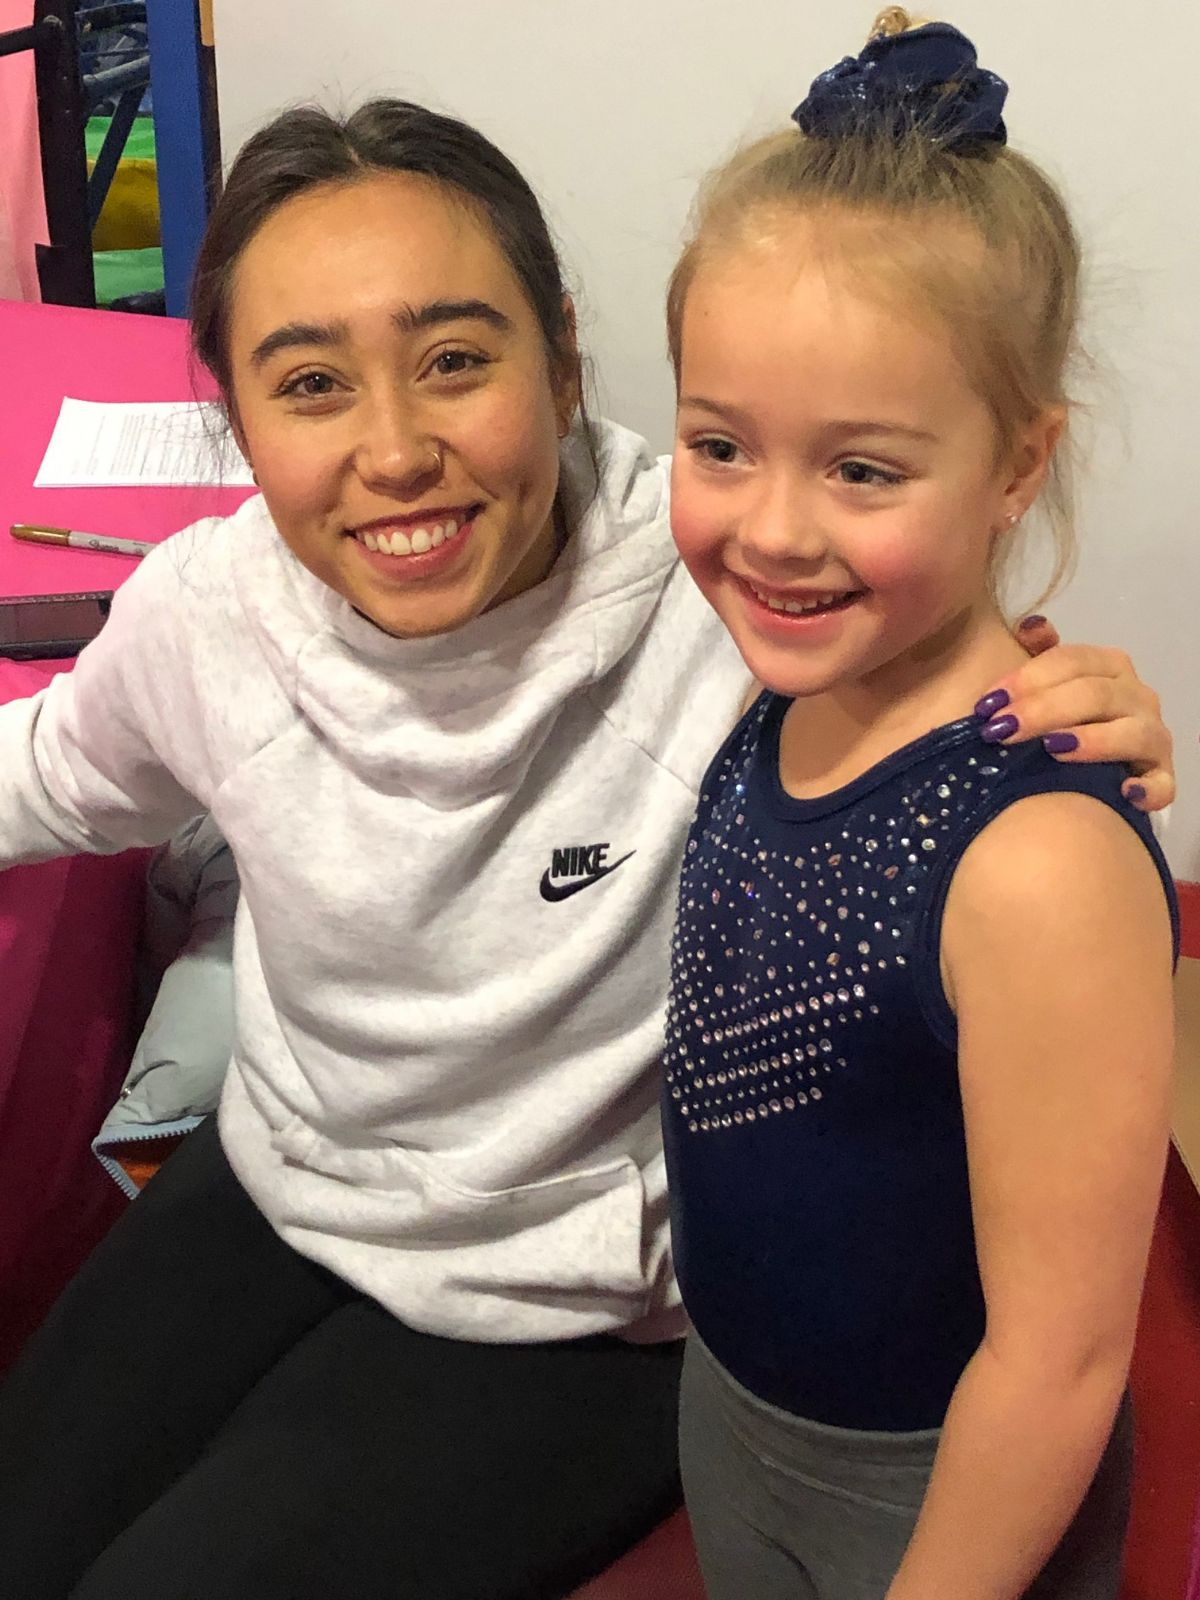 FUNDRAISING ENDS WEDNESDAY AT 11:59:59 PM - Set Goals with Katelyn Ohashi!